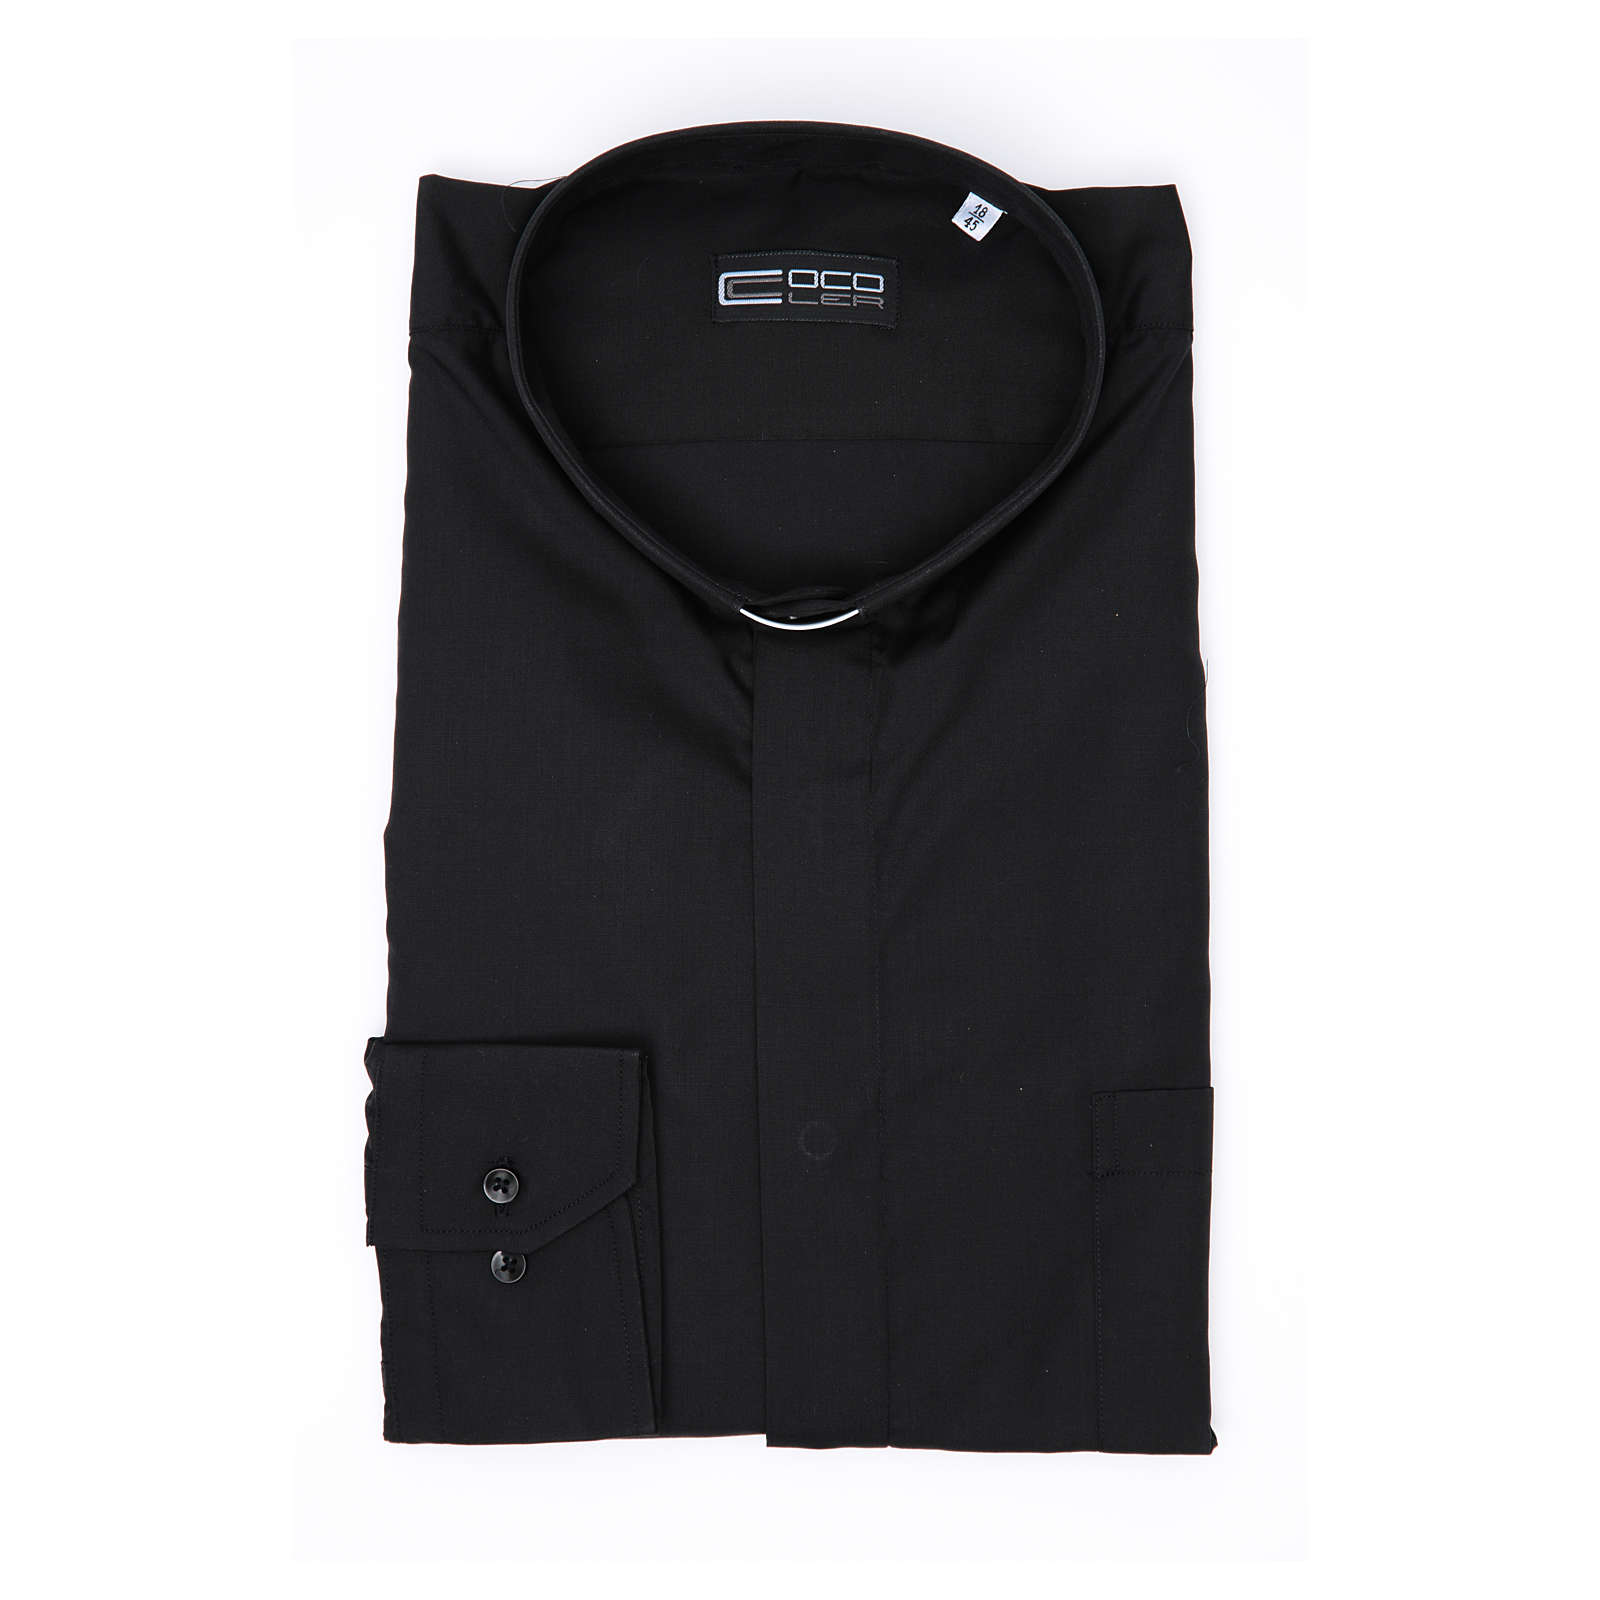 Camisa Clergy Manga Larga Color Uniforme Mixto Algodón Negro 4